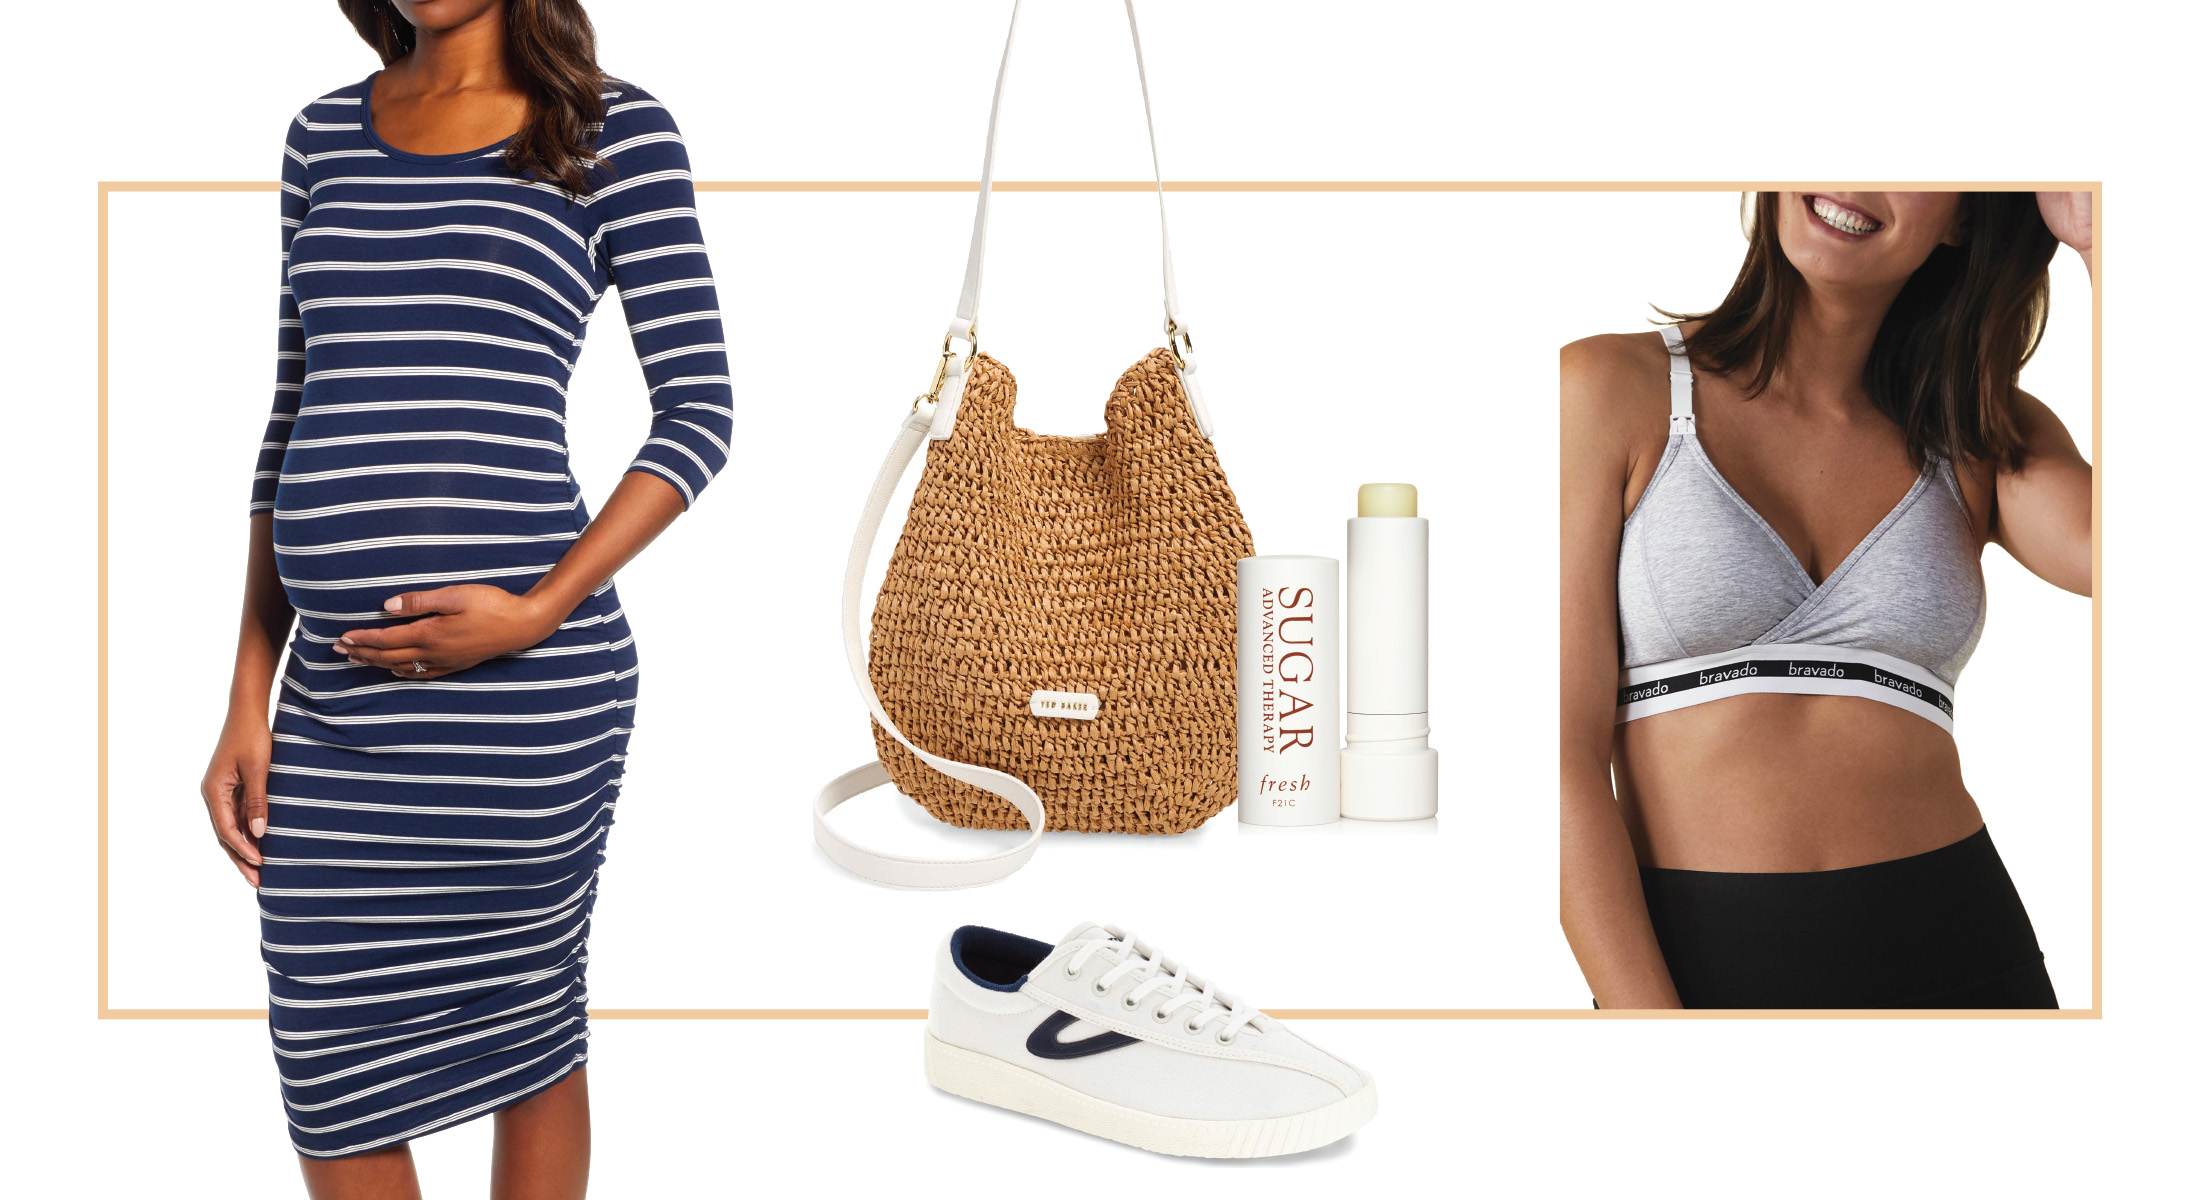 Maternity Dresses 7 Cute Summer Outfit Ideas The Mom Edit